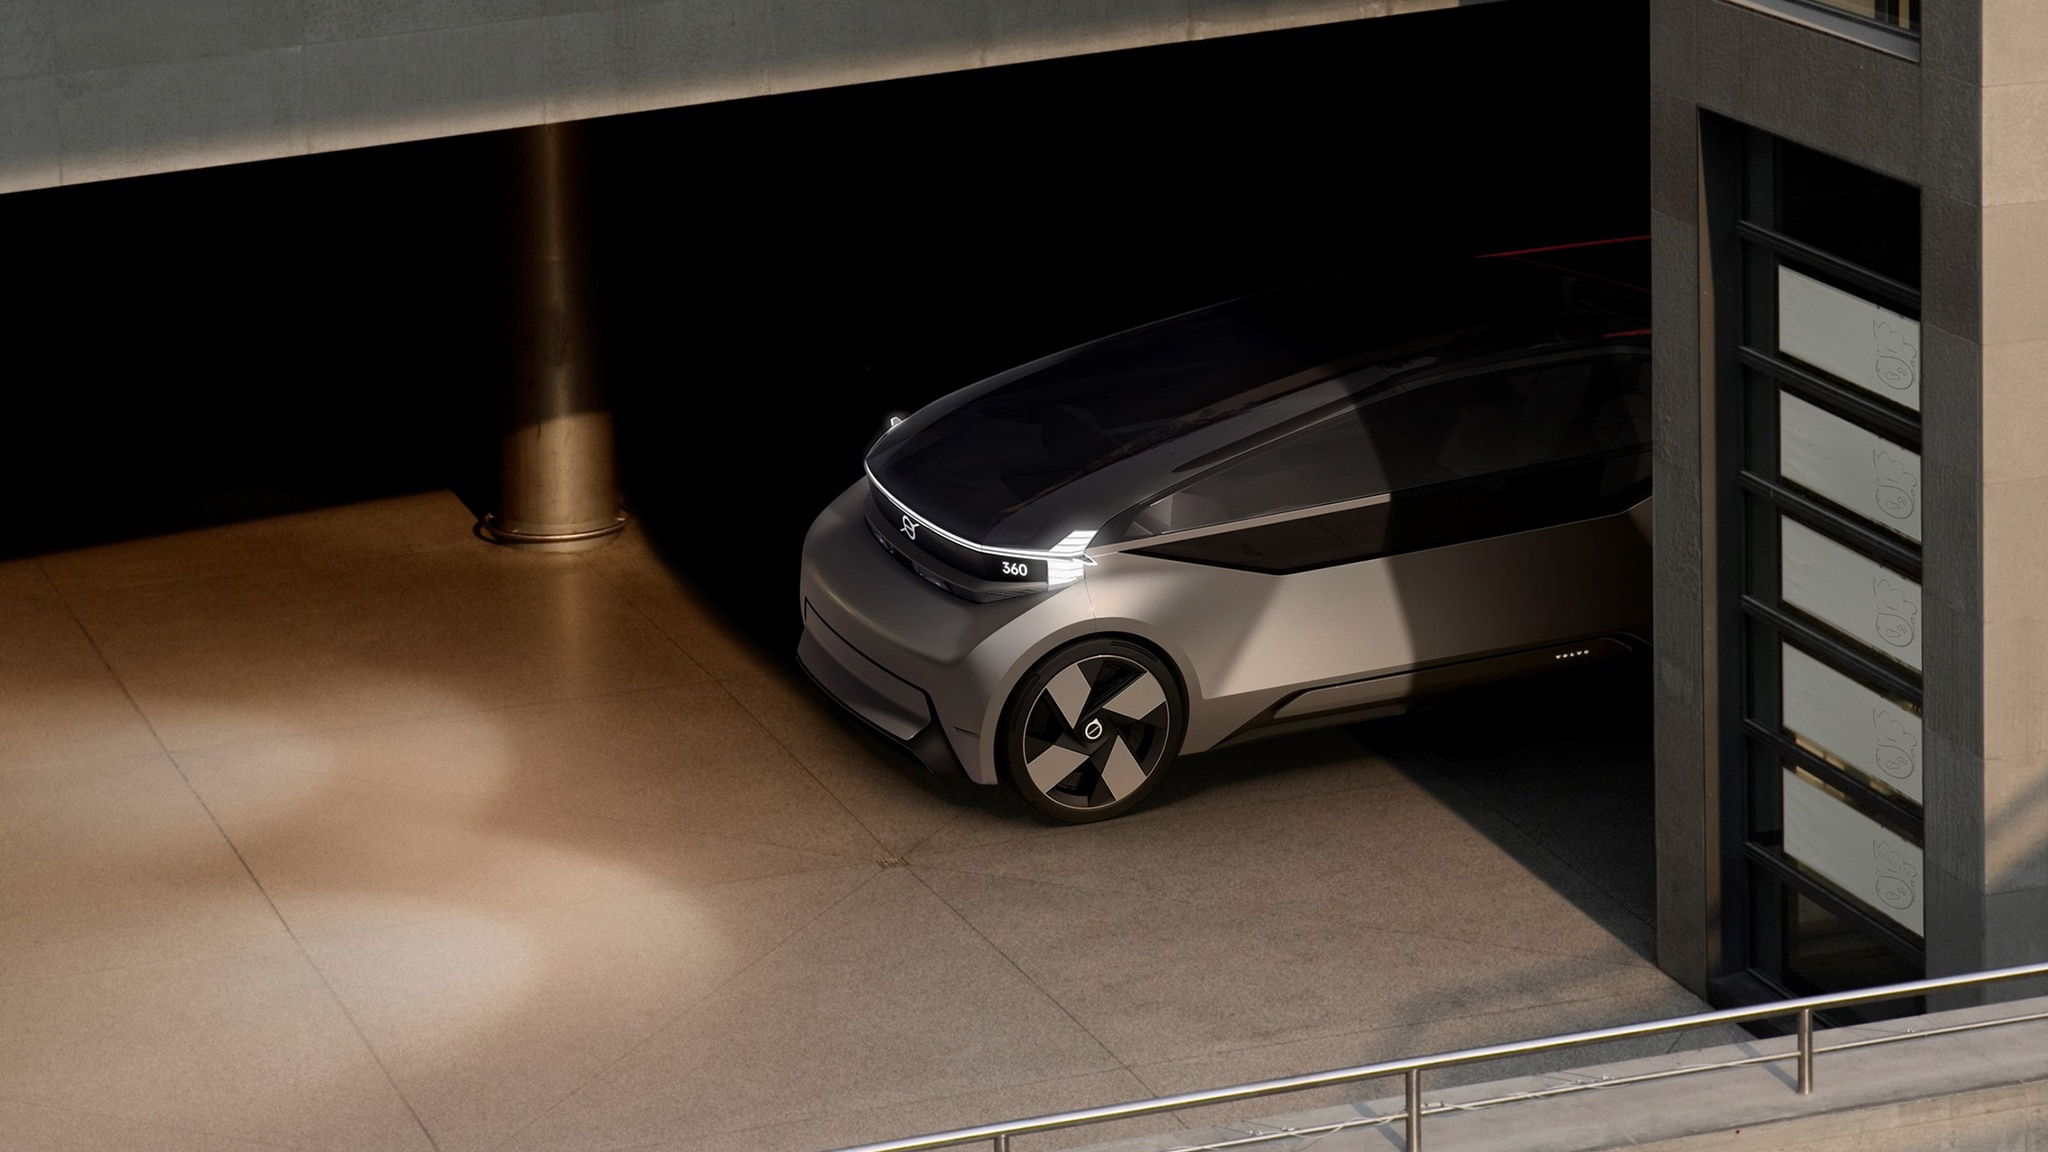 Inside the Cocoon: What to Expect from Automated-Vehicle